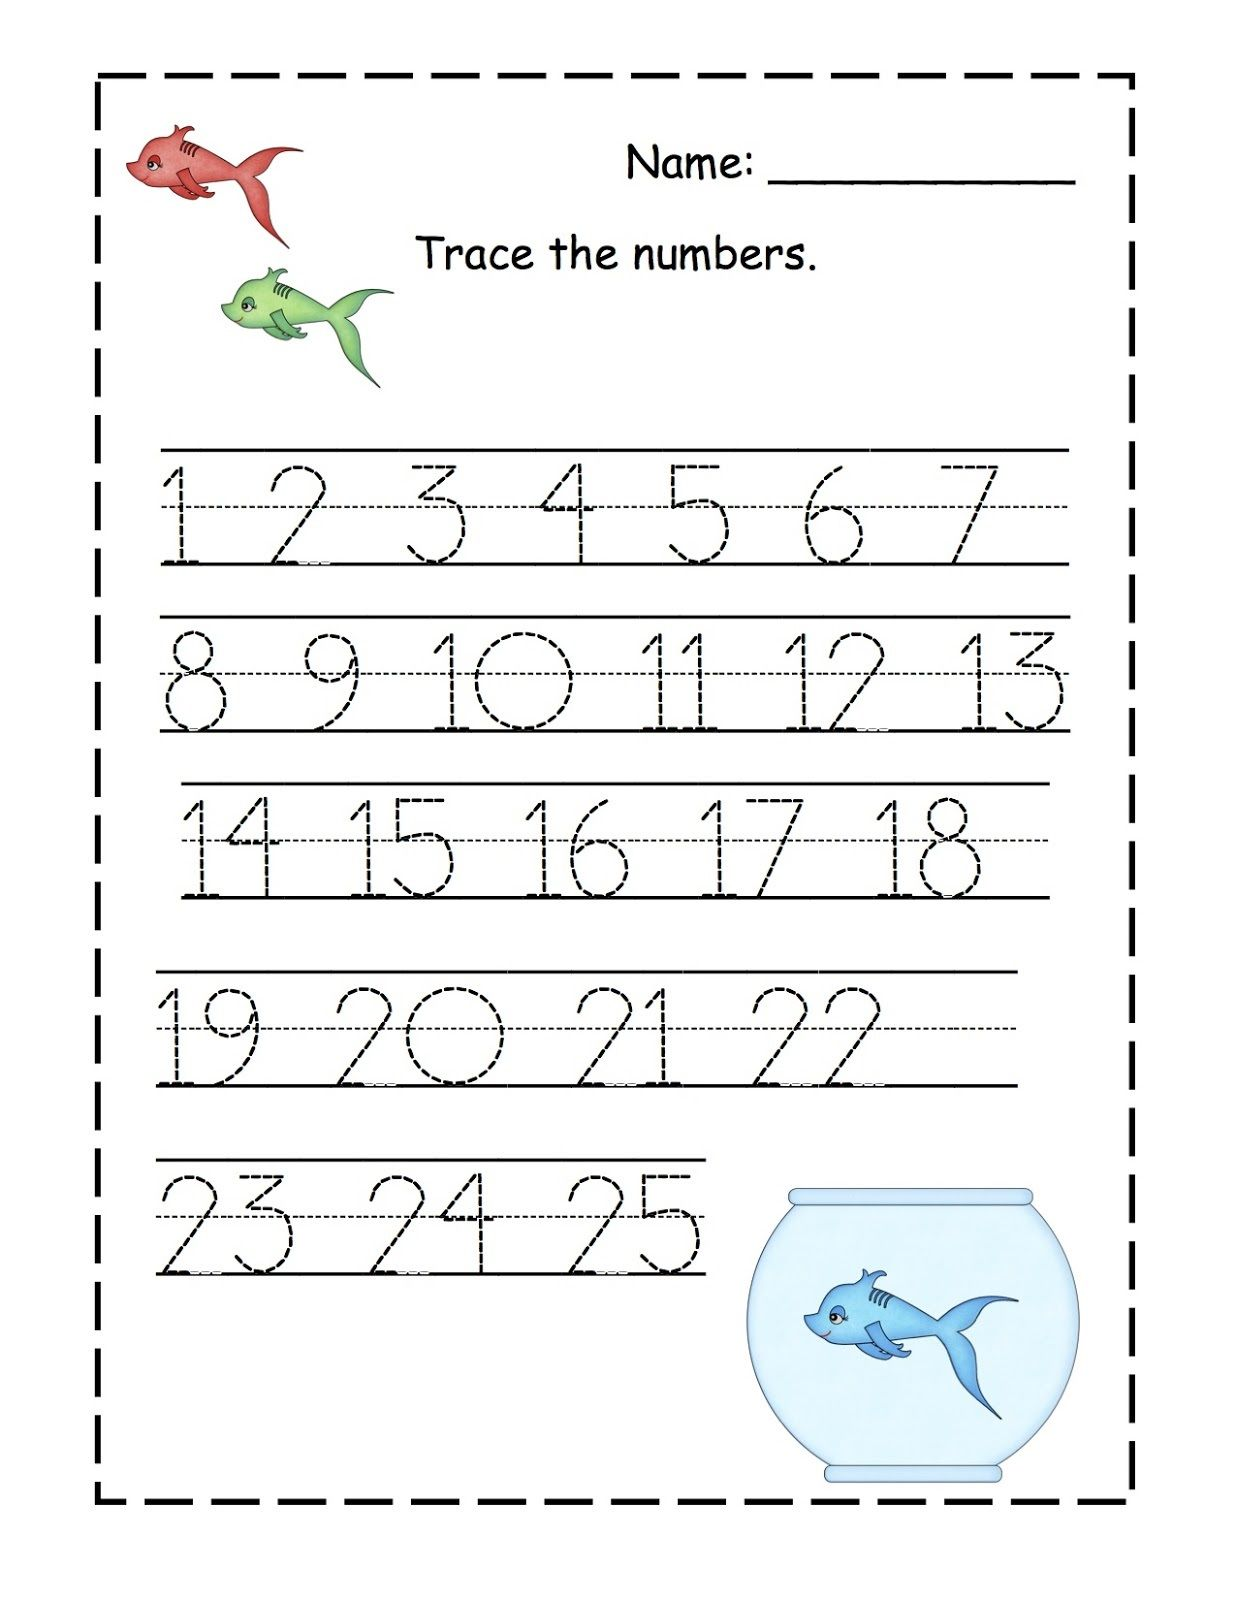 Numbers tracing printables for preschoolers - Number Trace Worksheets For Kids Activity Shelter